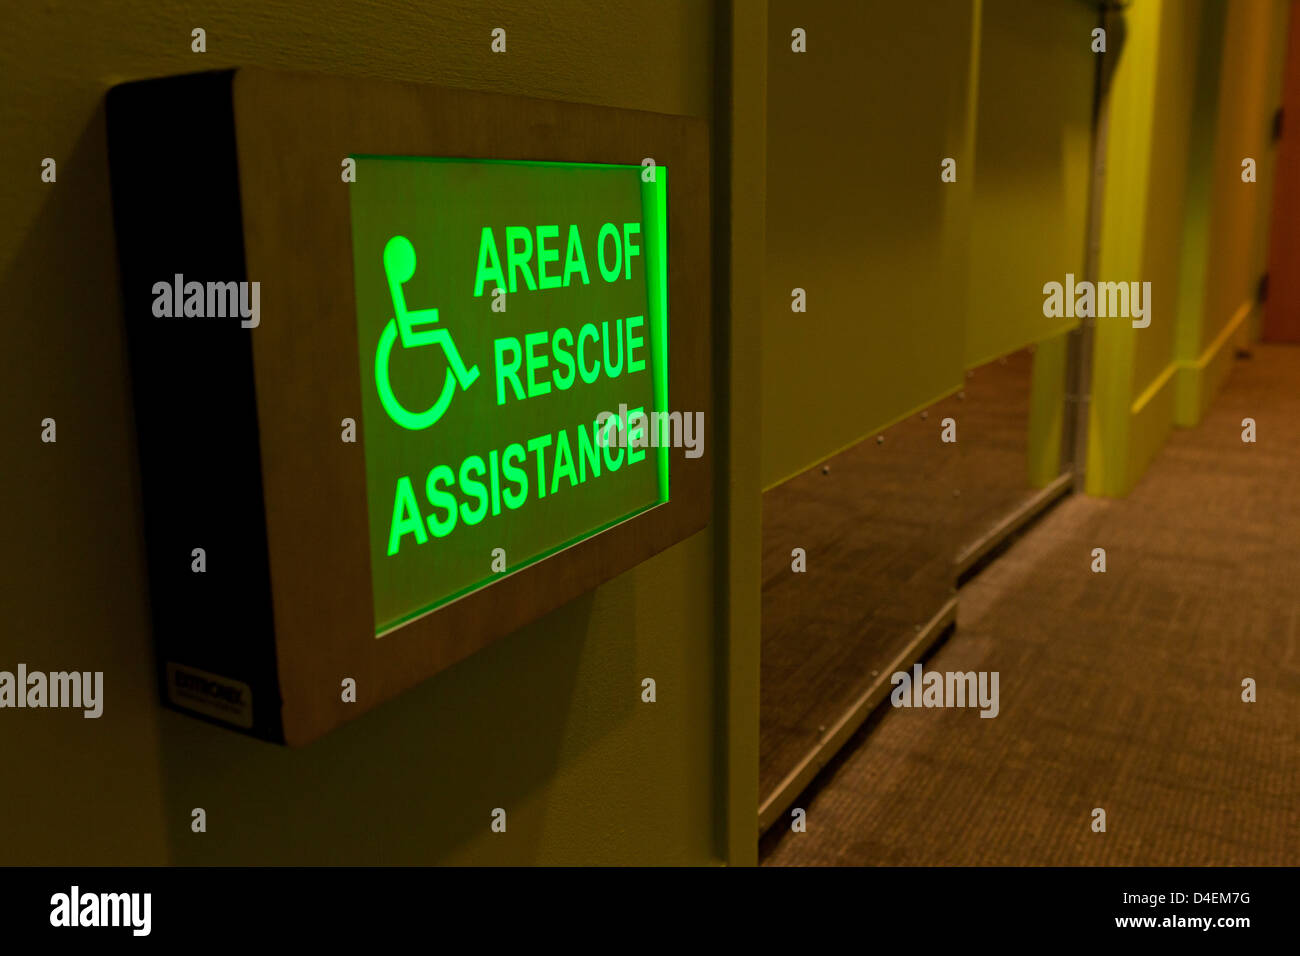 Disabled Rescue Assistance area sign - Stock Image